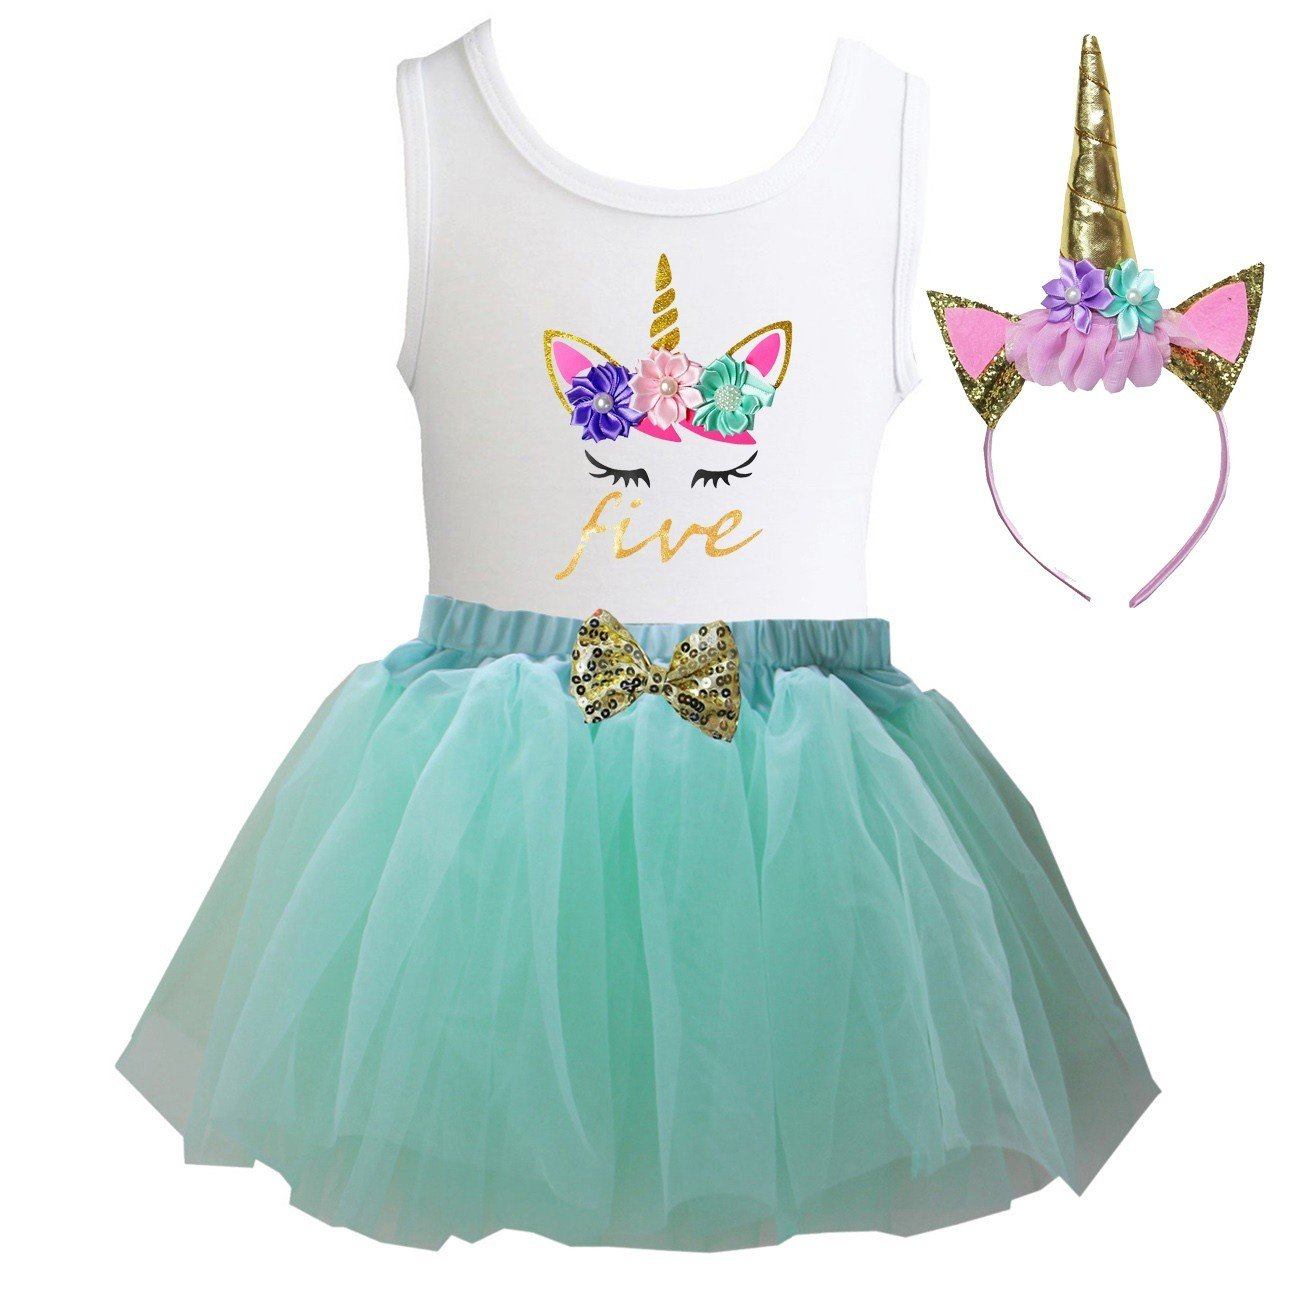 Kirei Sui Girls Mint Tulle Tutu Birthday Unicorn M Five